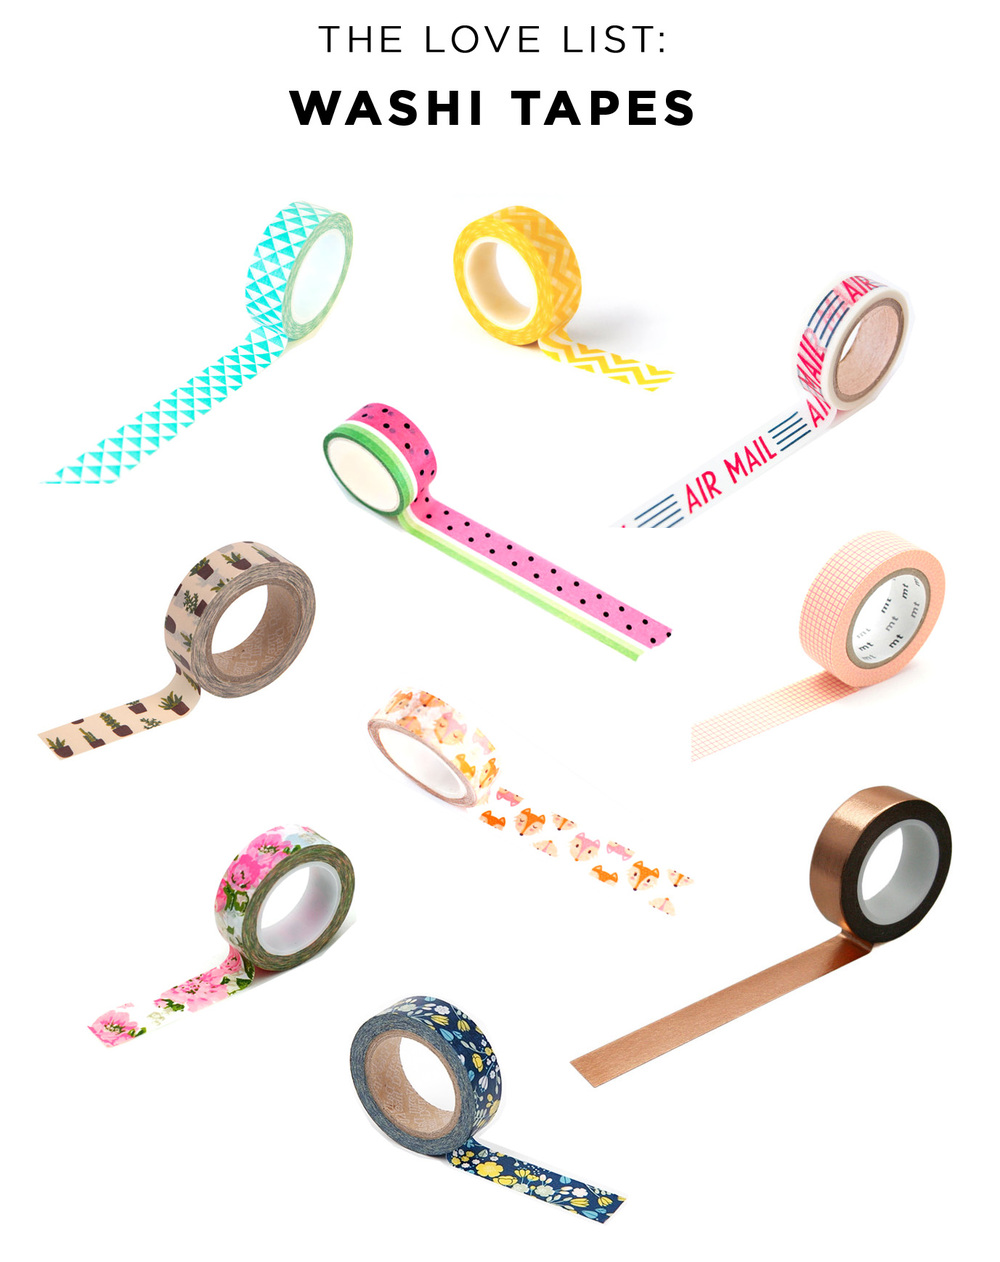 The Love List: Washi Tapes | Amy Tangerine